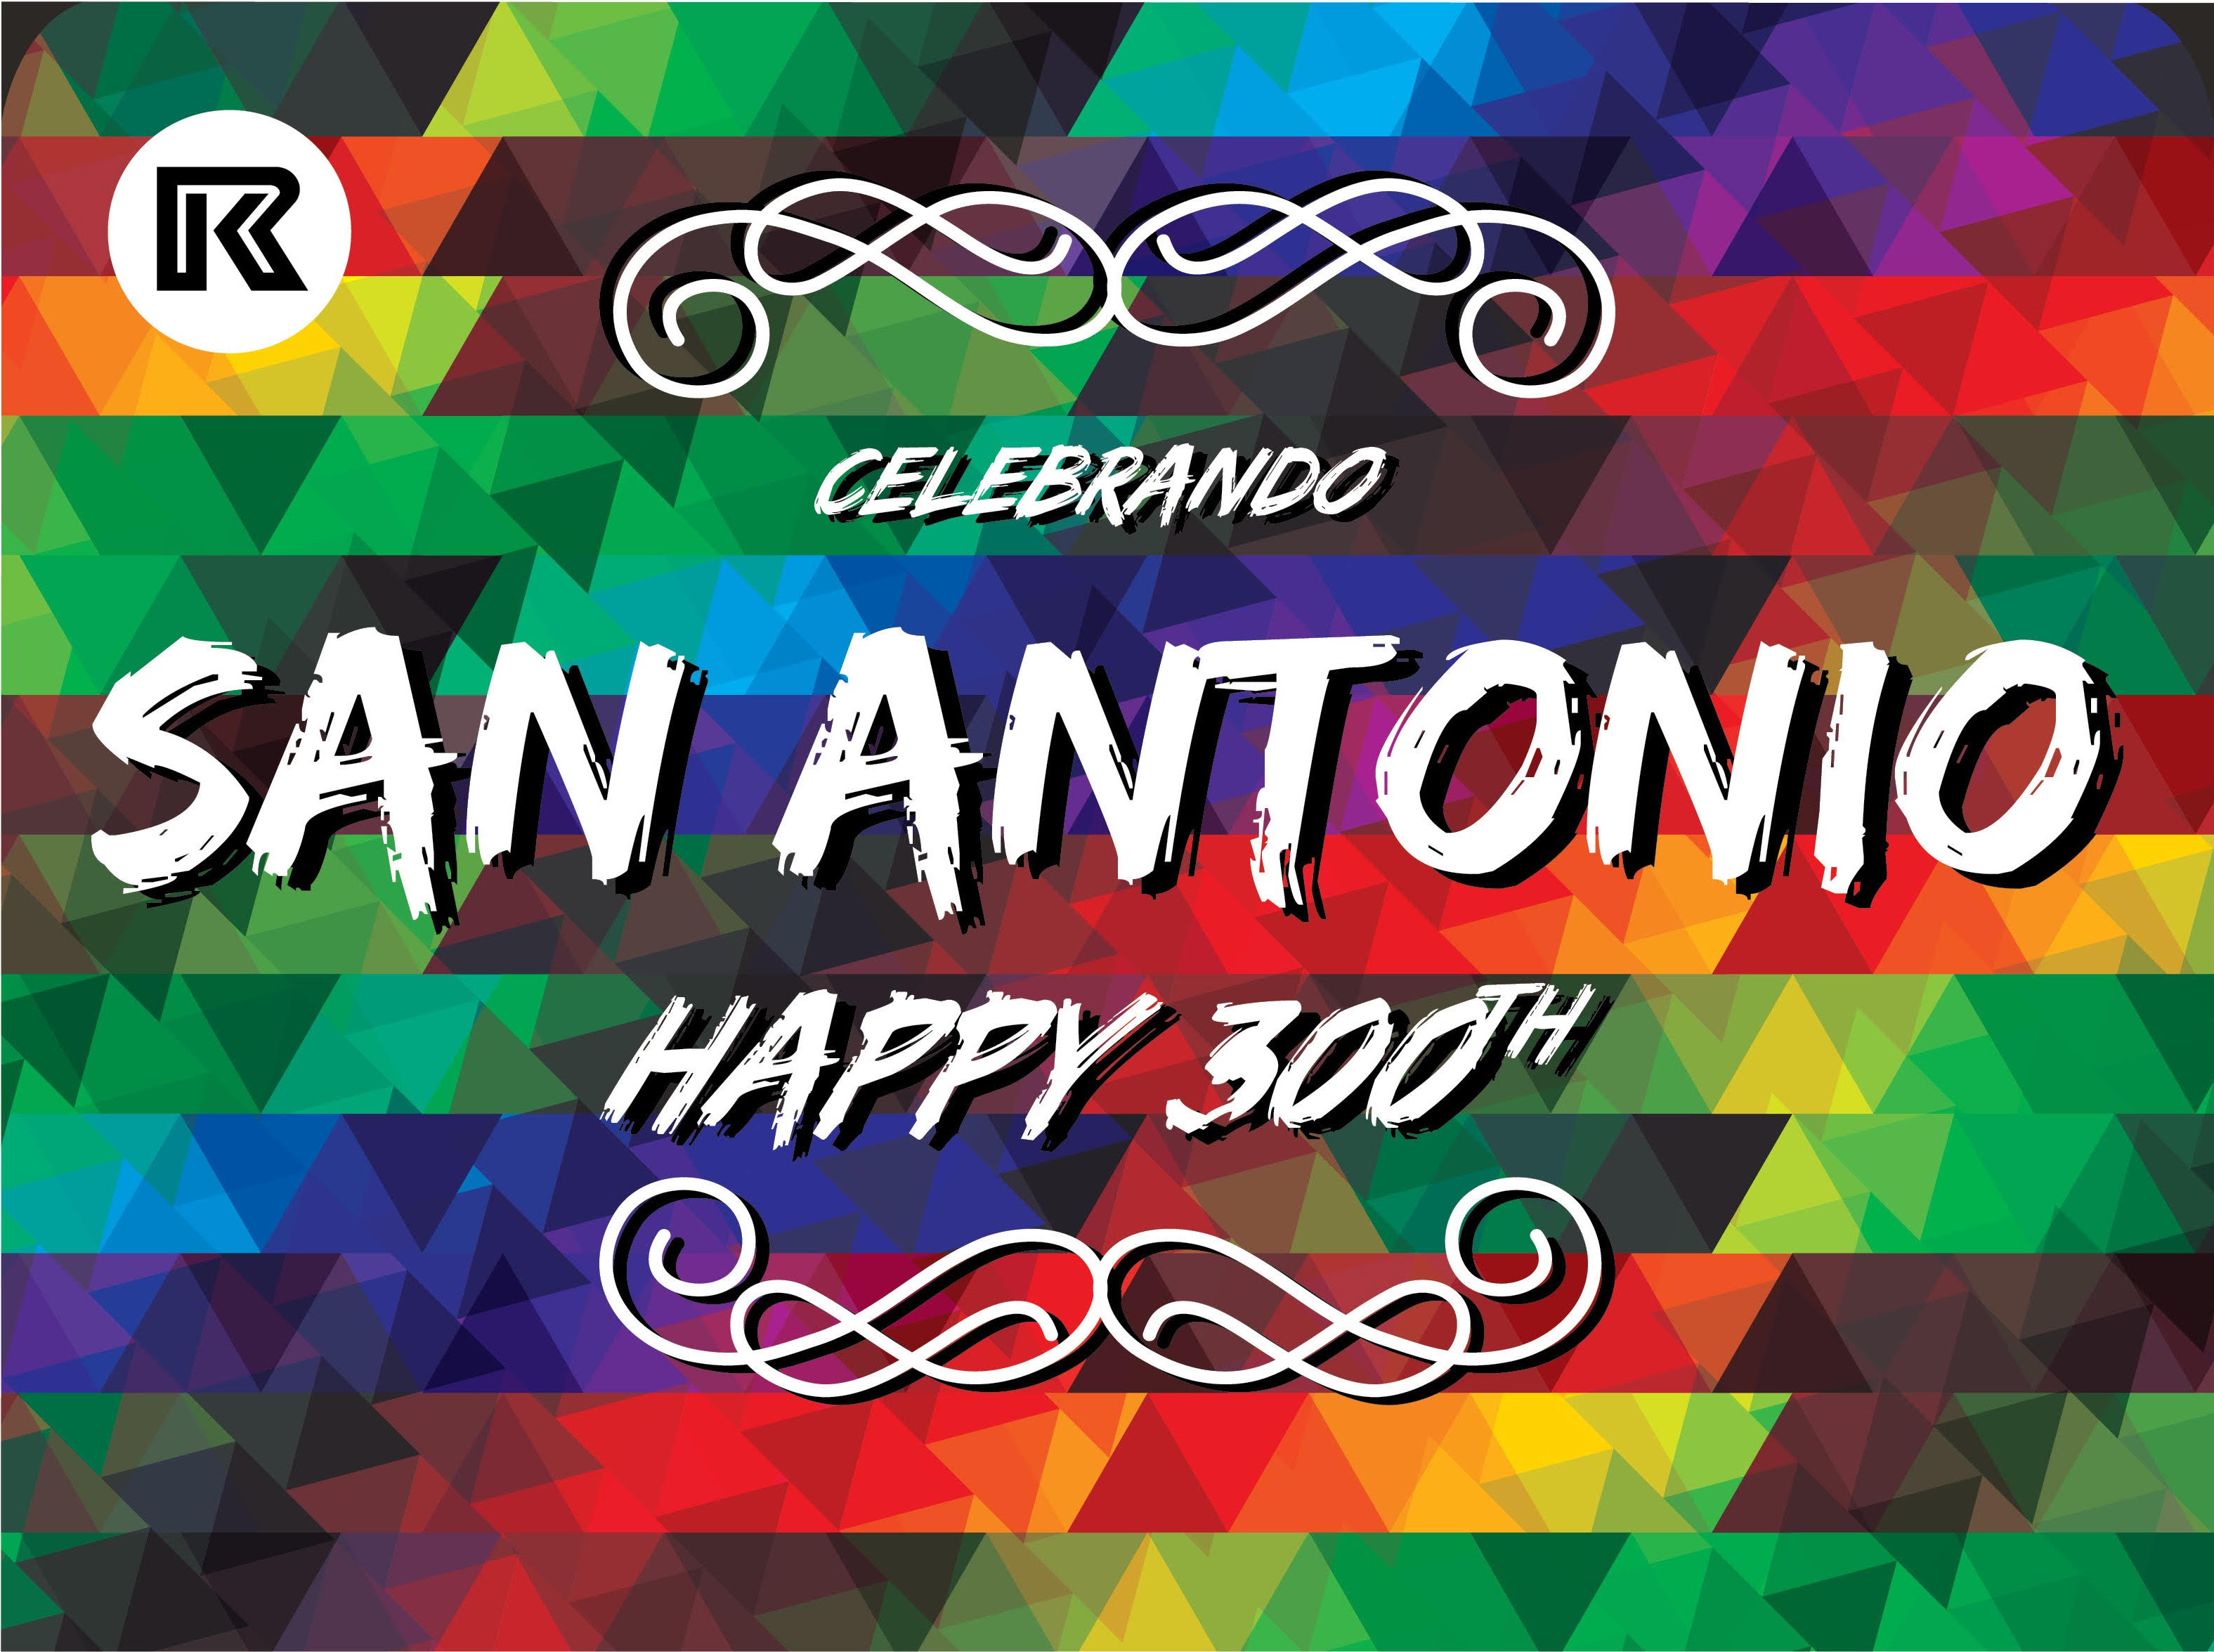 San Antonio Happy 300th Image